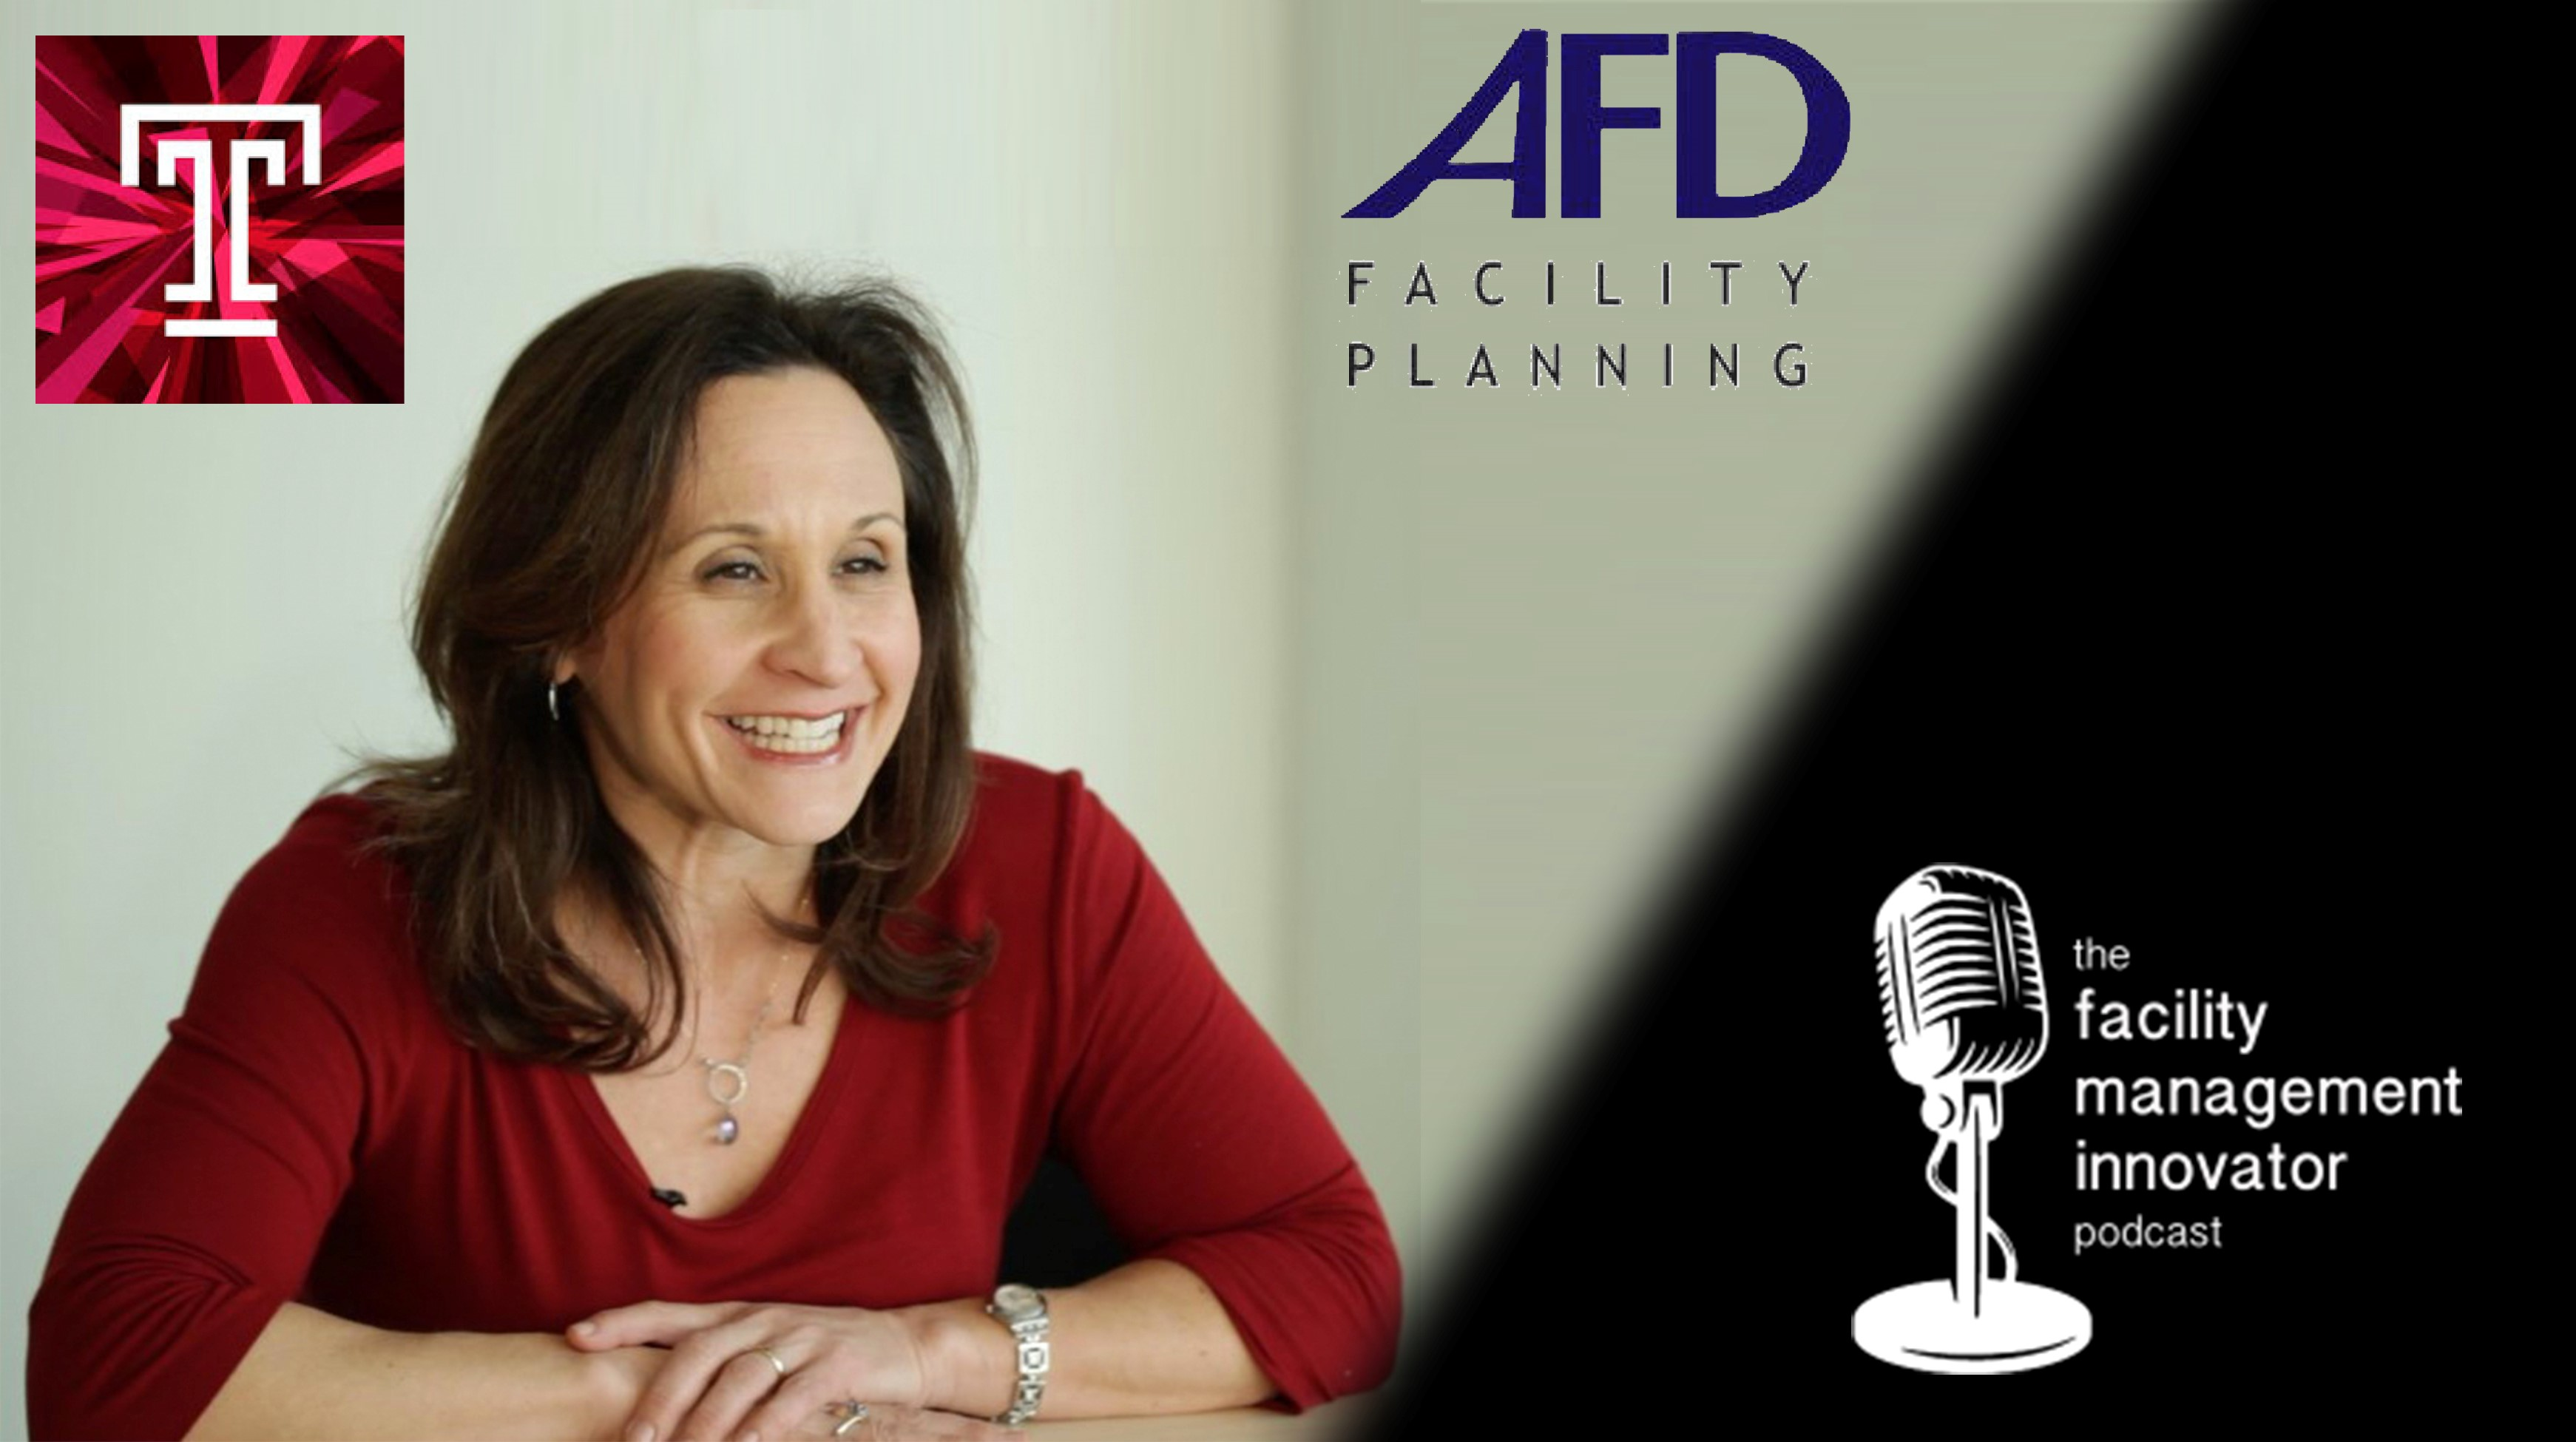 Ep. 59: FM Education, Relationships & Change Management | Alana Dunoff, FMP, IFMA Fellow